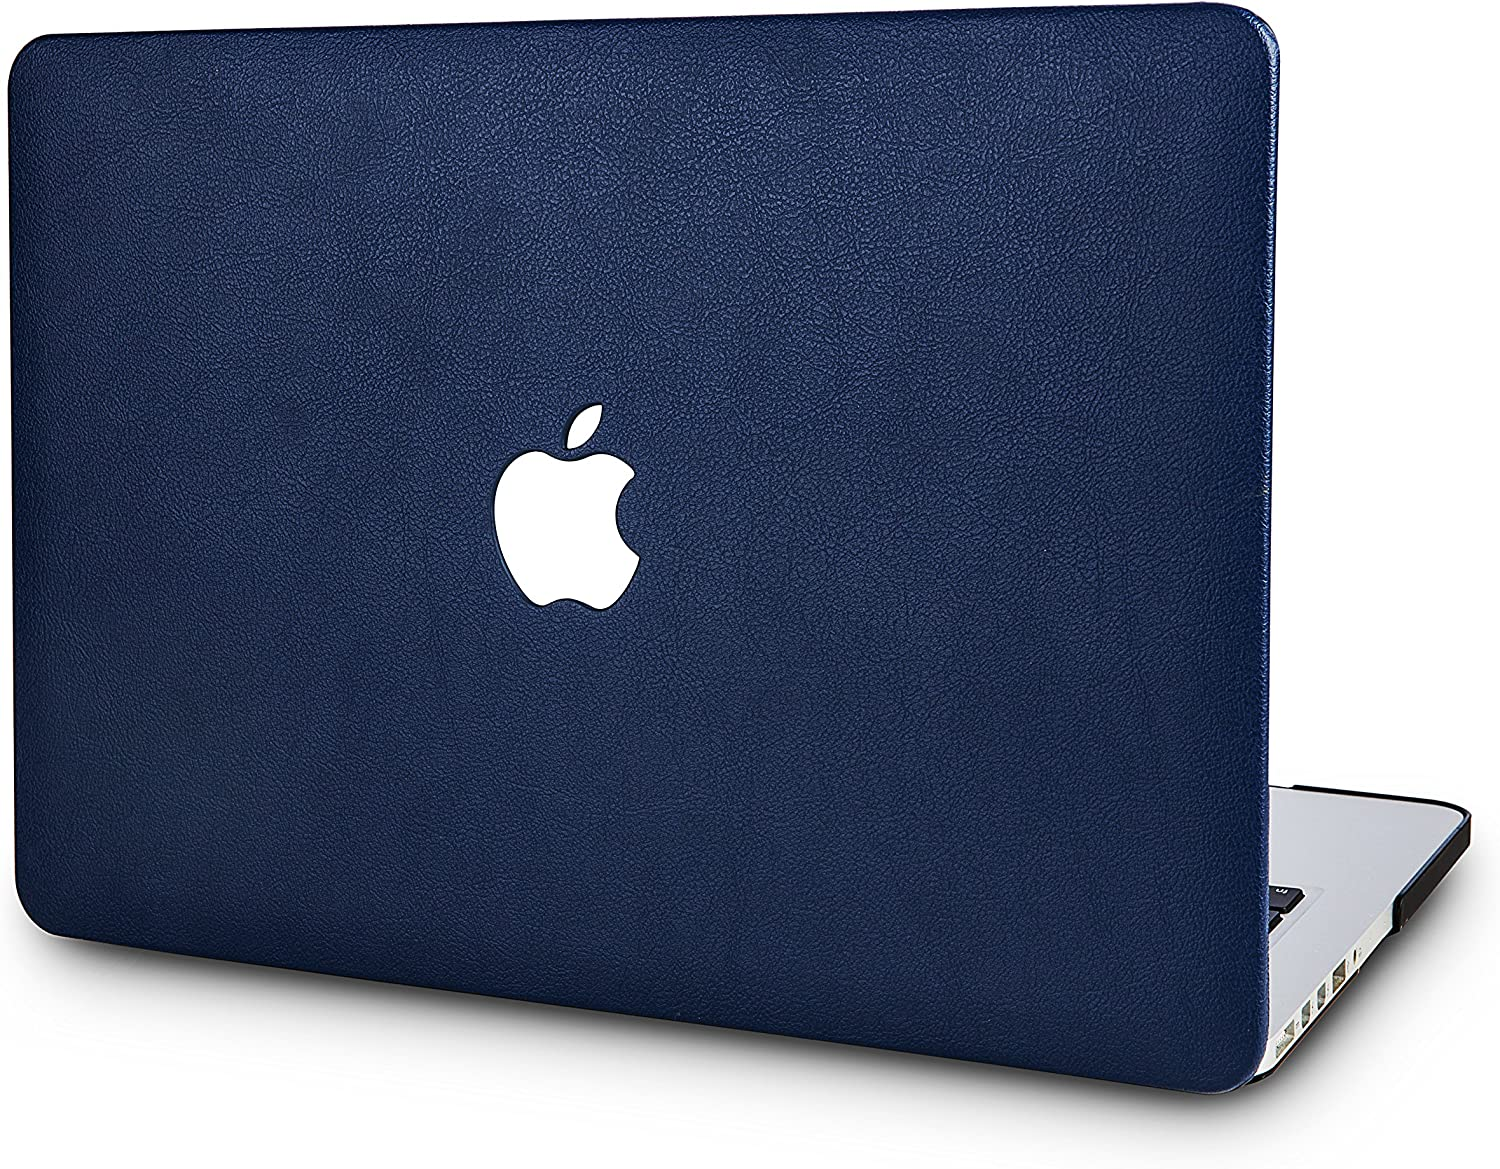 "KECC Laptop Case for MacBook Pro 15"" (2019/2018/2017/2016) Italian Leather Hard Shell Cover A1990/A1707 Touch Bar (Navy Blue Leather)"